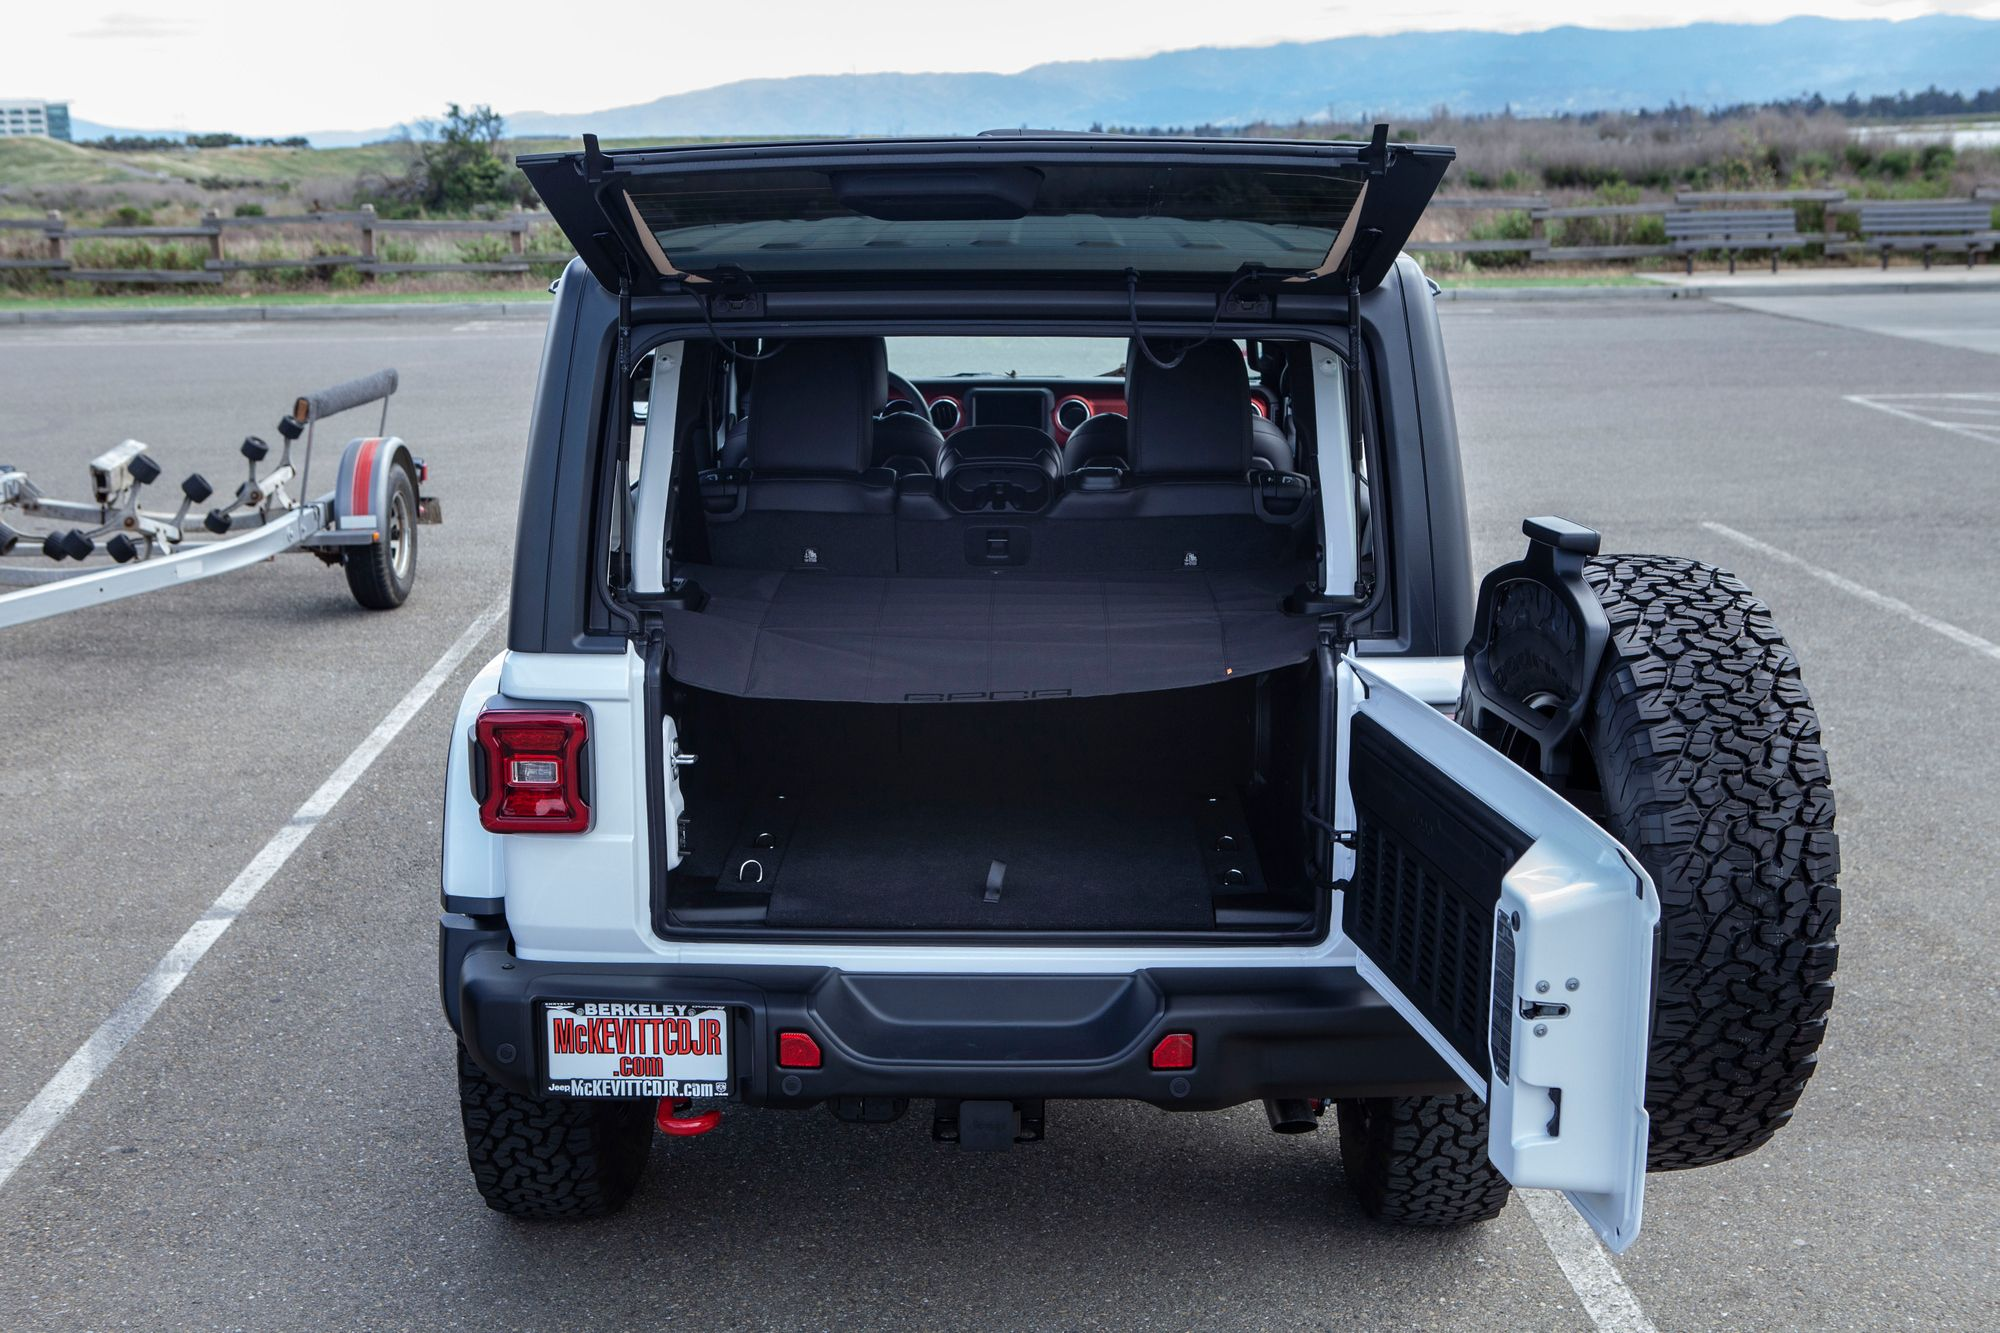 Jeep Wrangler Jl Unlimited Cargo Cover Lite With Images Jeep